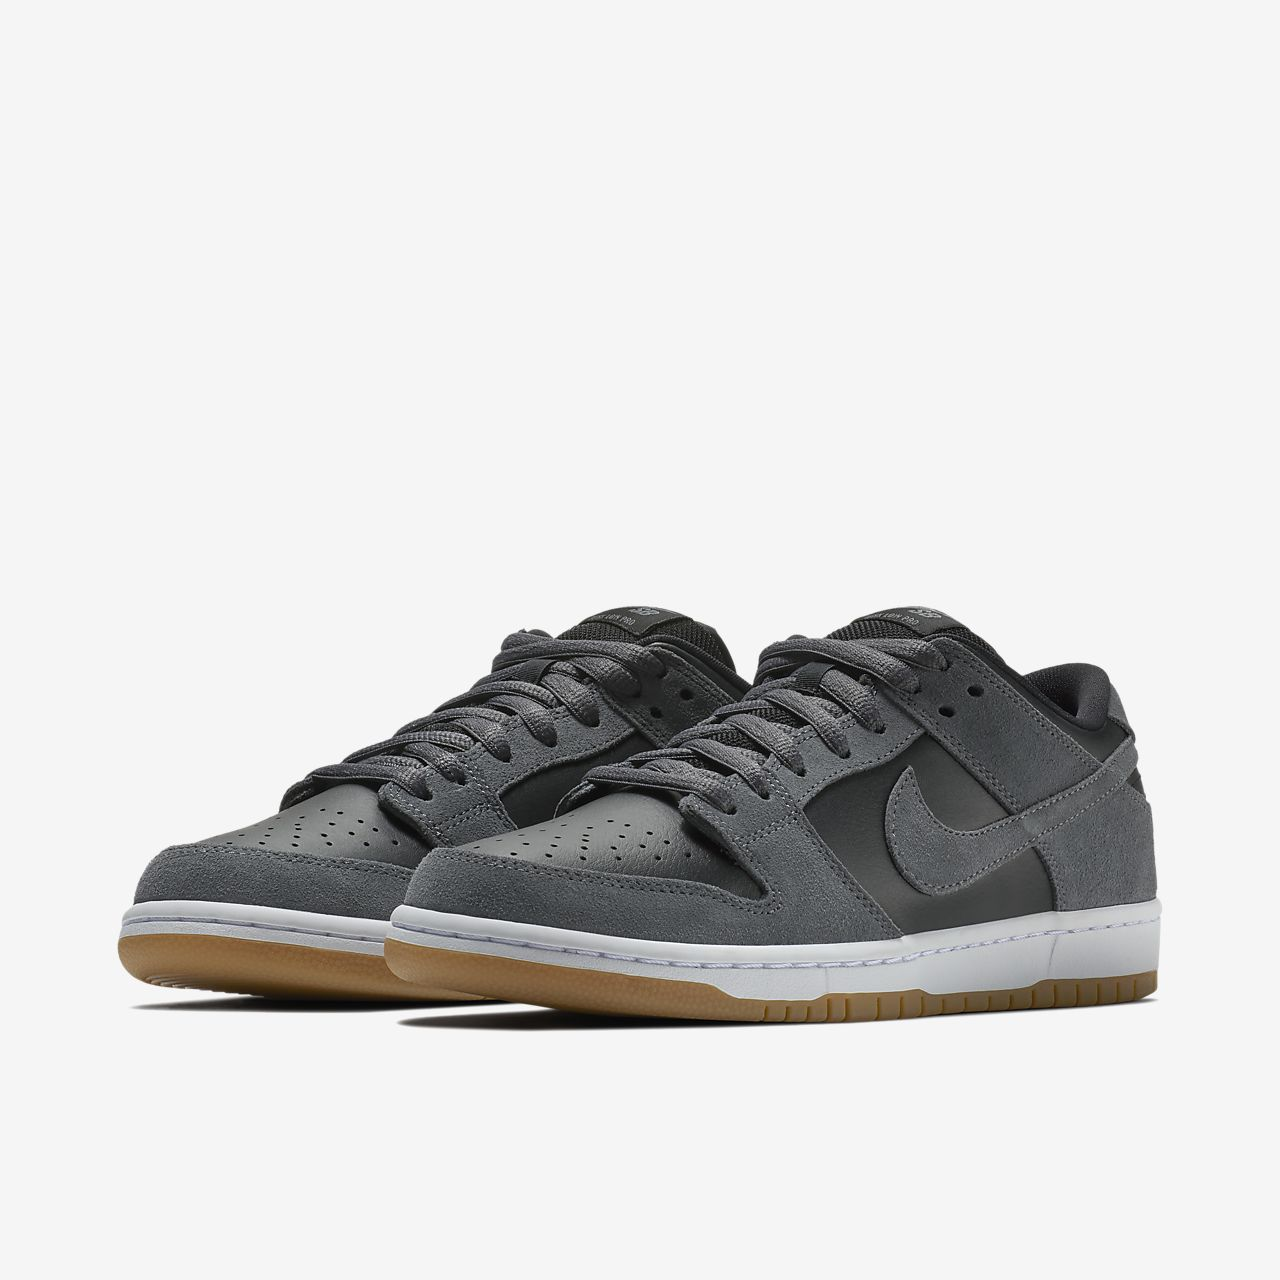 outlet store 4bc32 2df3d ... Nike SB Dunk Low TRD Men s Skateboarding Shoe